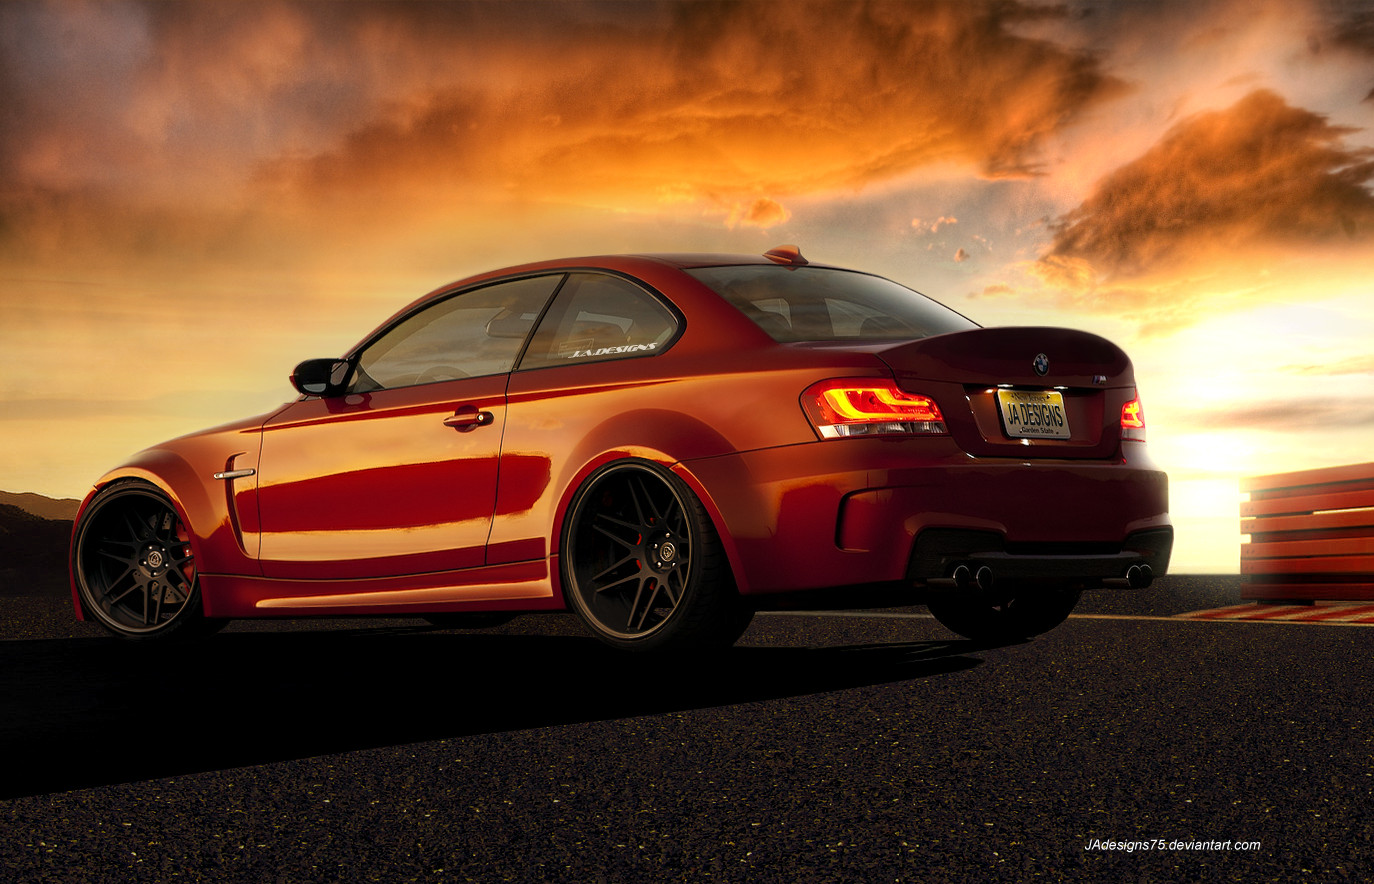 BMW 1M WideBody Render by JAdesigns75